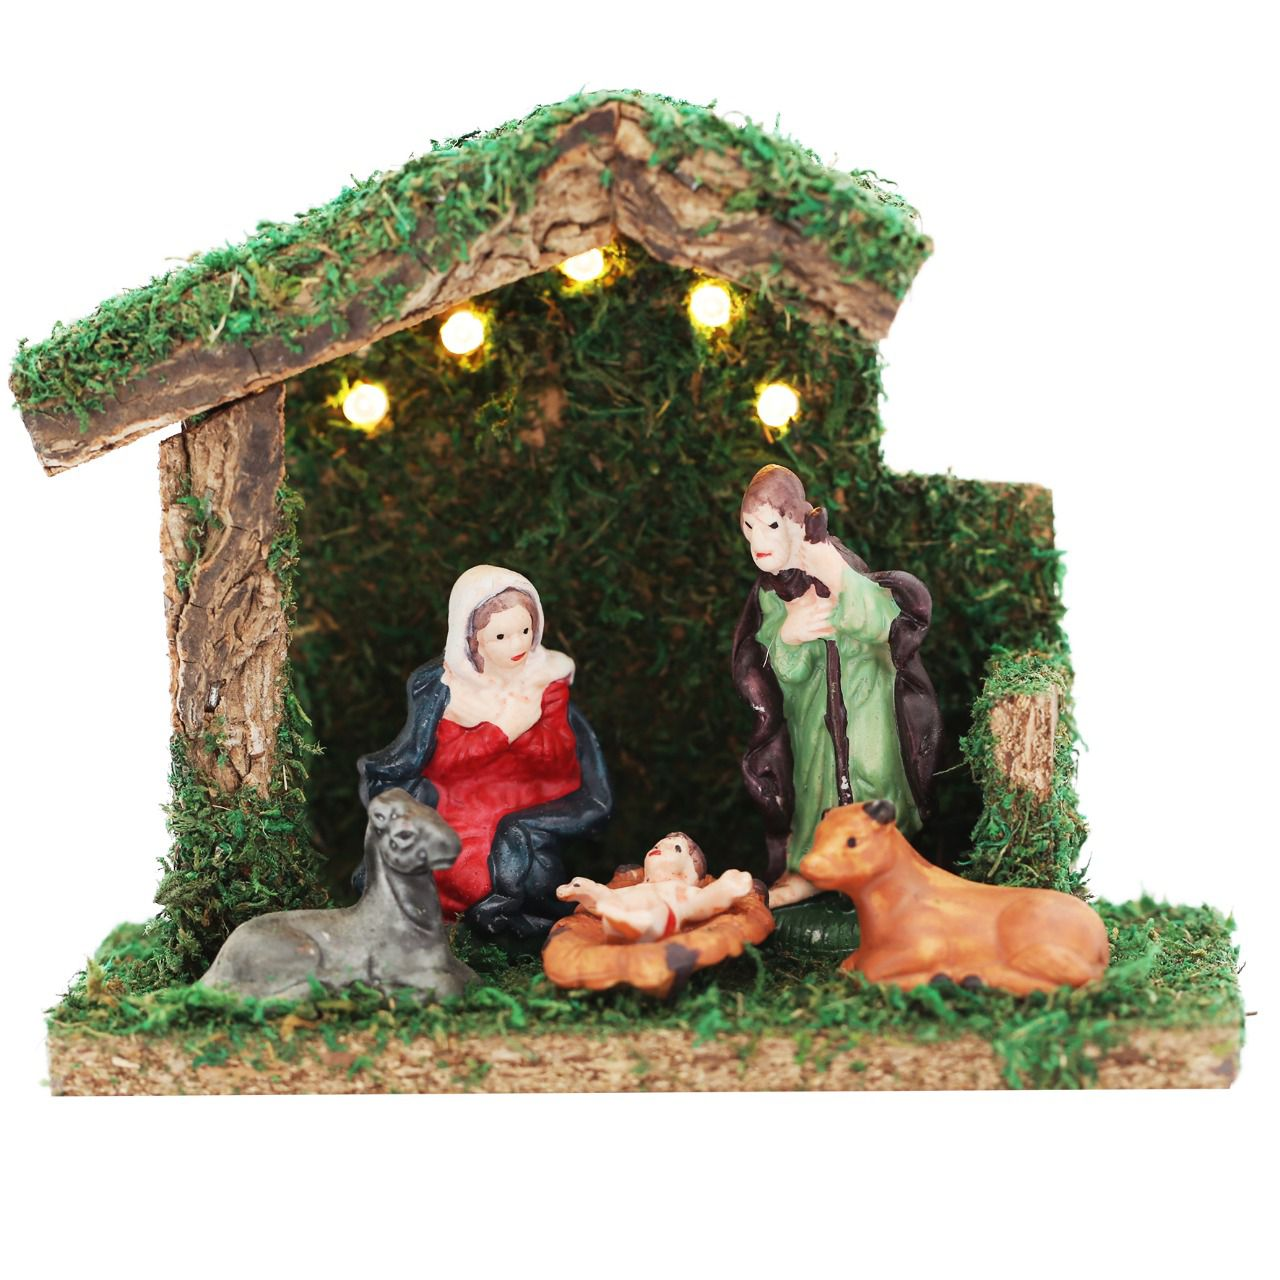 PRESEPIO PORCELANA 5LED 5FIG/6CM CS 15CM